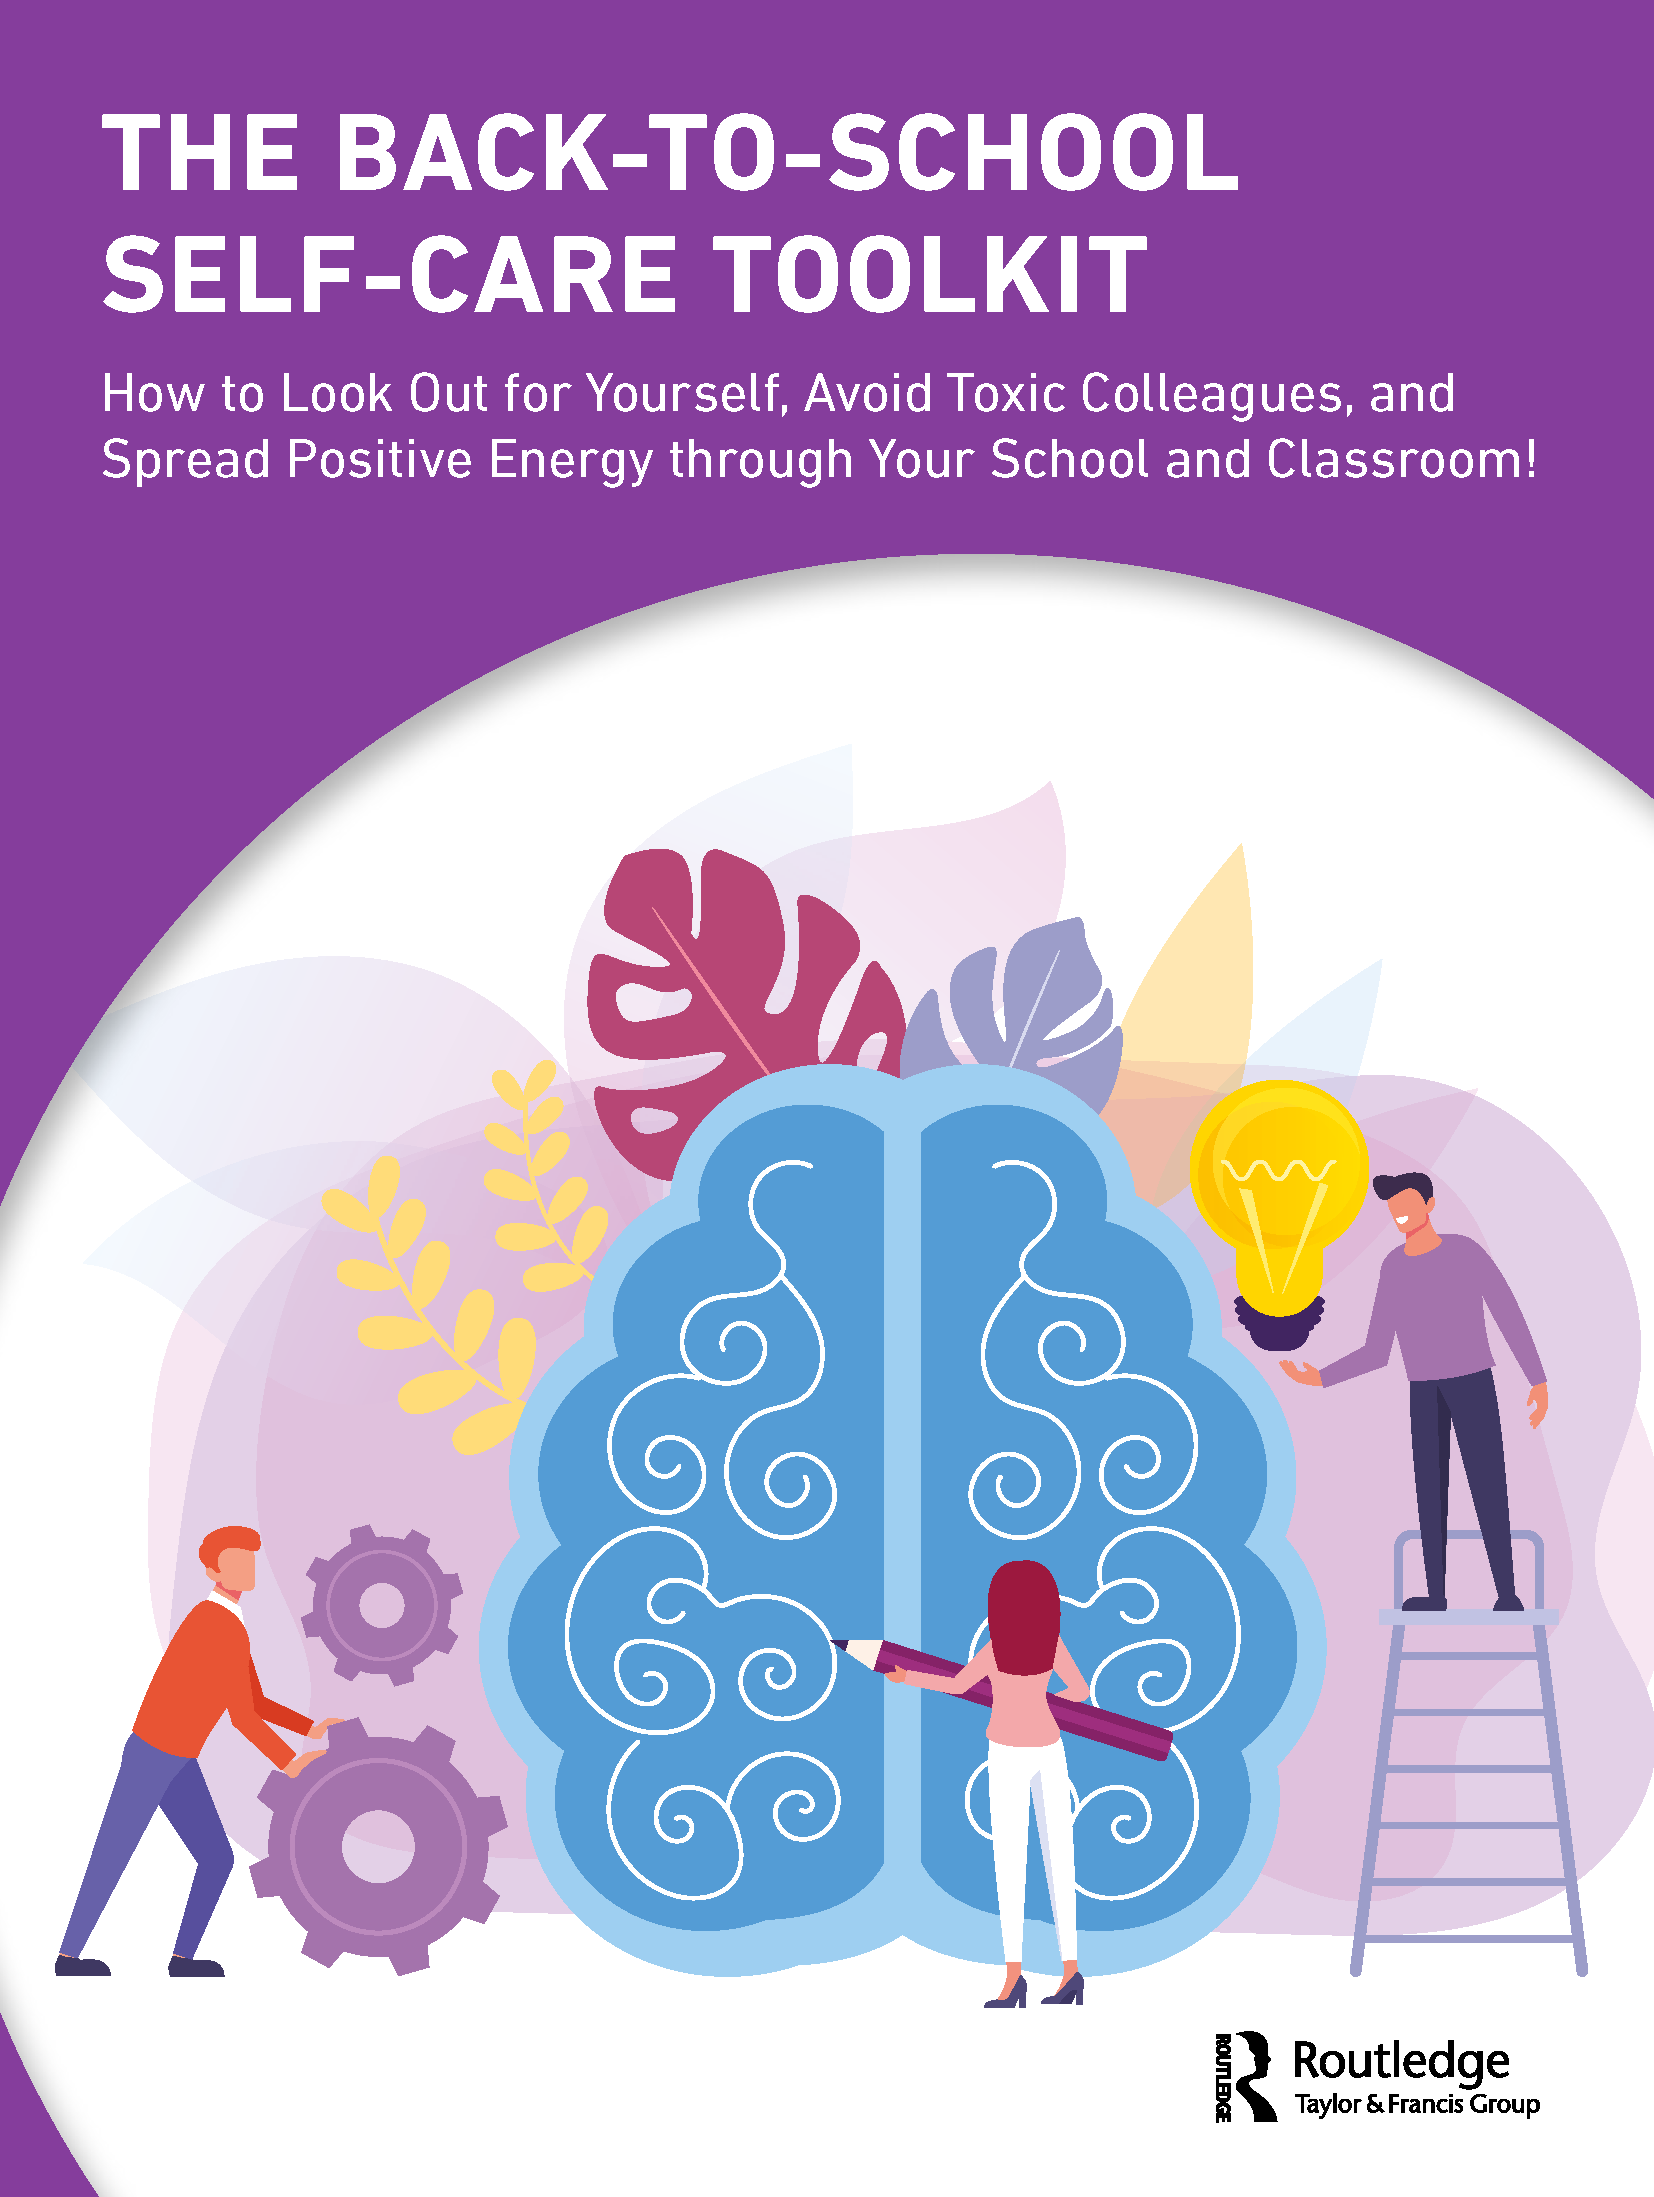 The Back-to-School Self-Care Toolkit